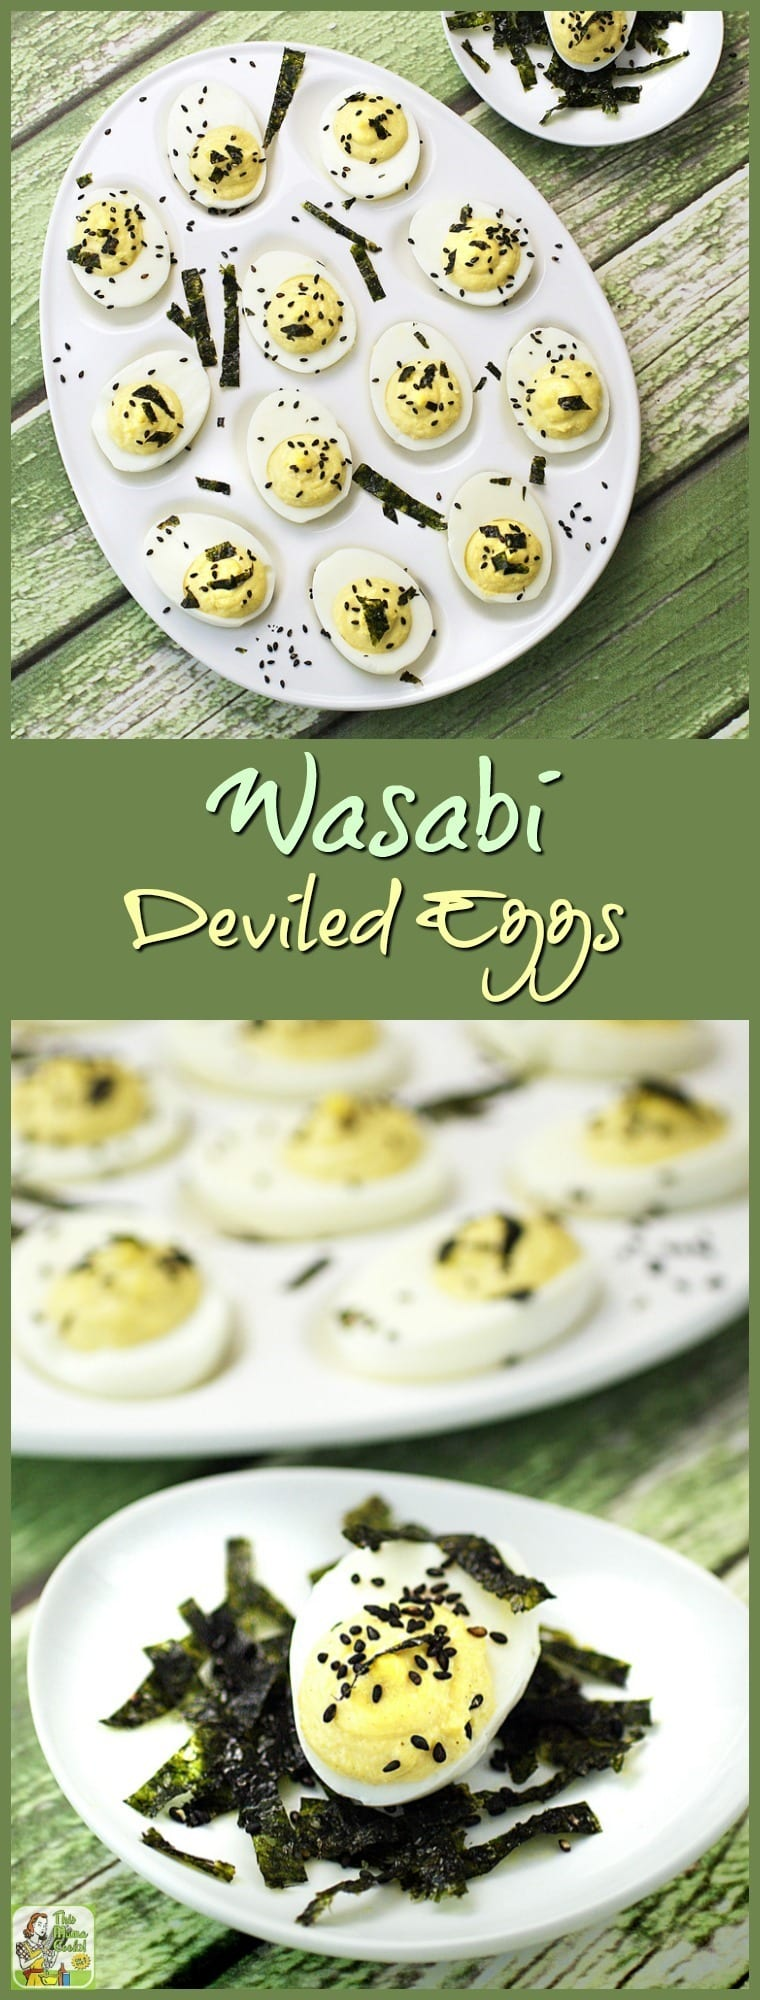 Wasabi-Deviled-Eggs-5